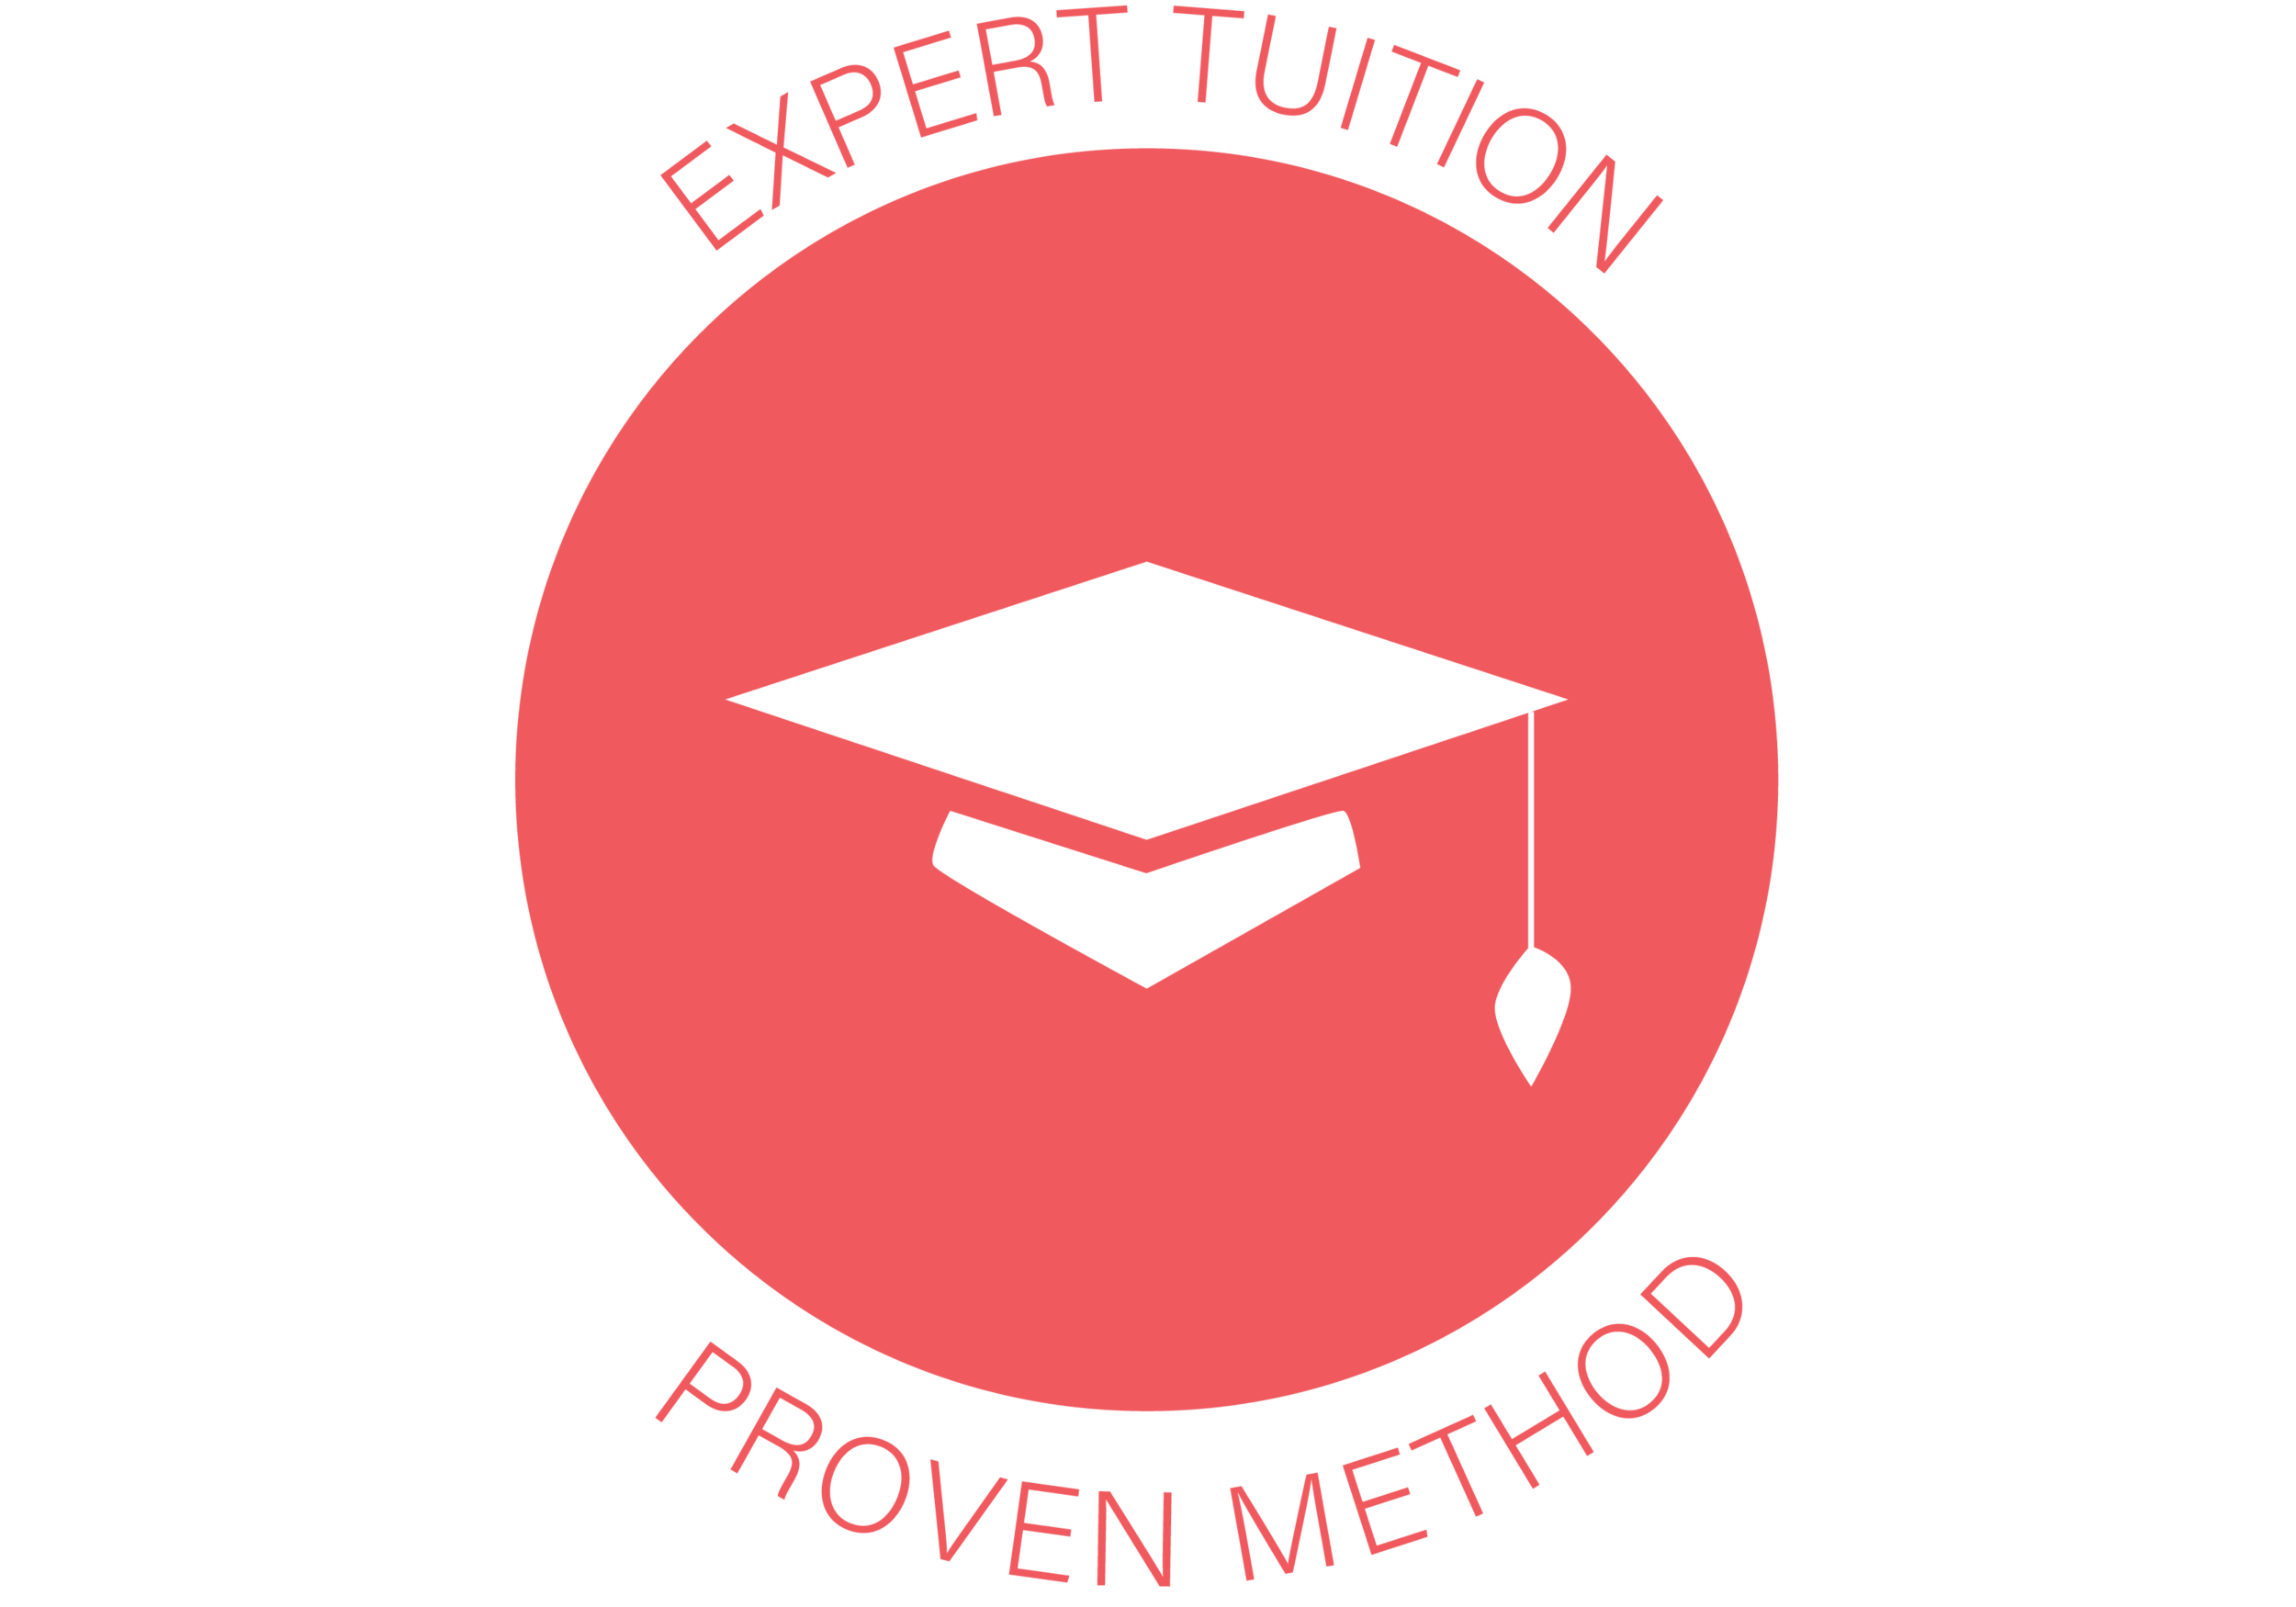 stamp_bond-street-languages_mortarboard_Expert tuition-01.png